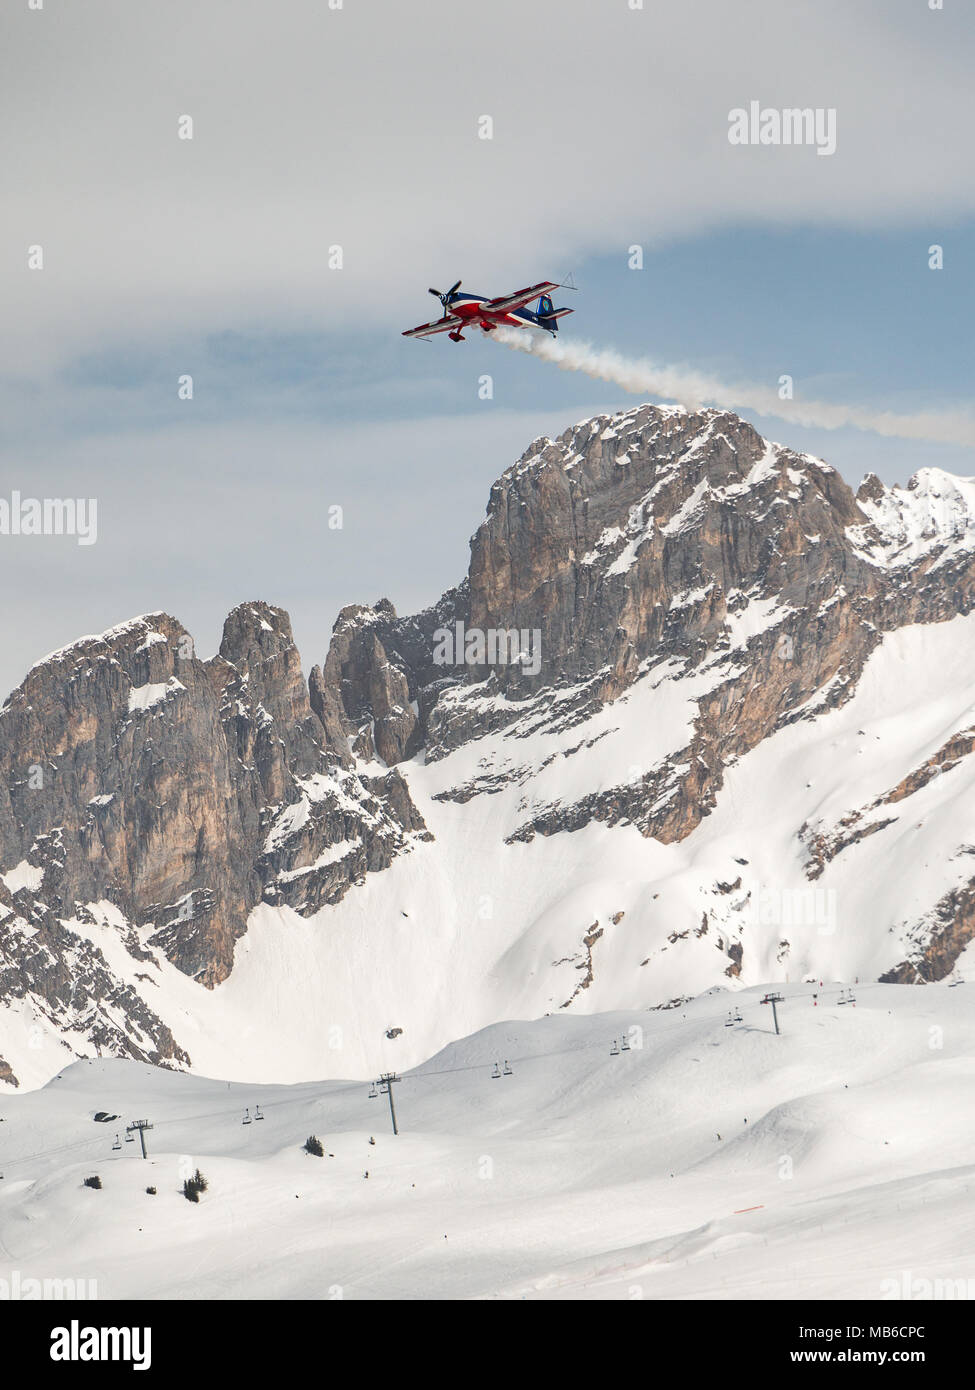 L'armee de l'air plane flying ove the Portetta mountain peak of Courchevel 1650 Moriond during the air show event Fly Courchevel 2018 acrobatic flight - Stock Image